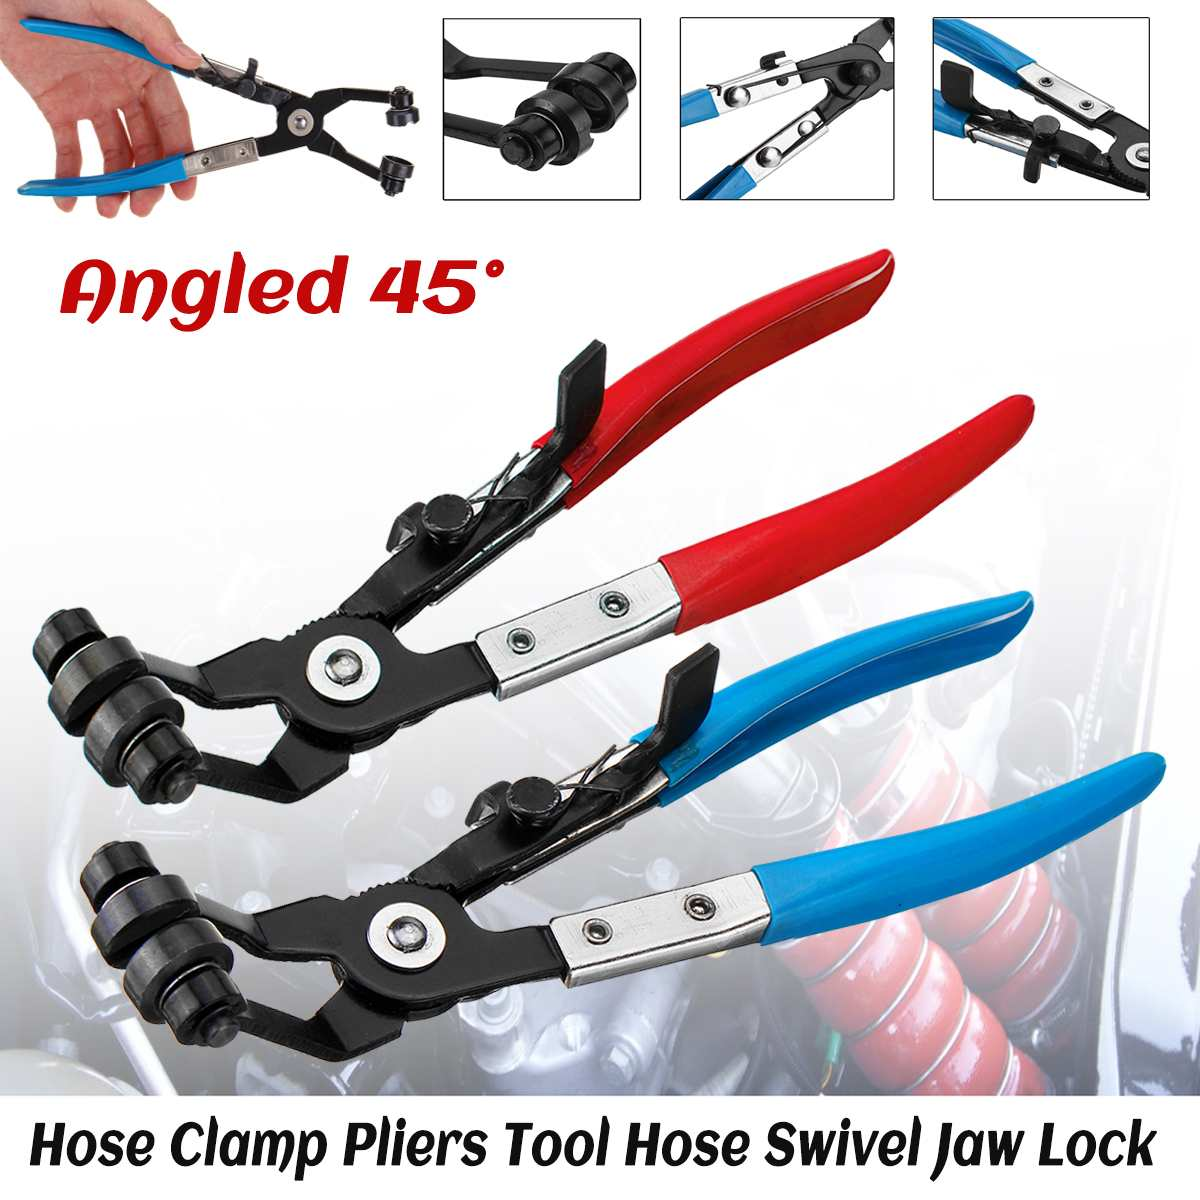 Hose Clamps Pliers Auto Pliers For Car Repair Hose Removal Tool 45 Degree Bent Handle Clip Stainless Repairing Tool Red Blue